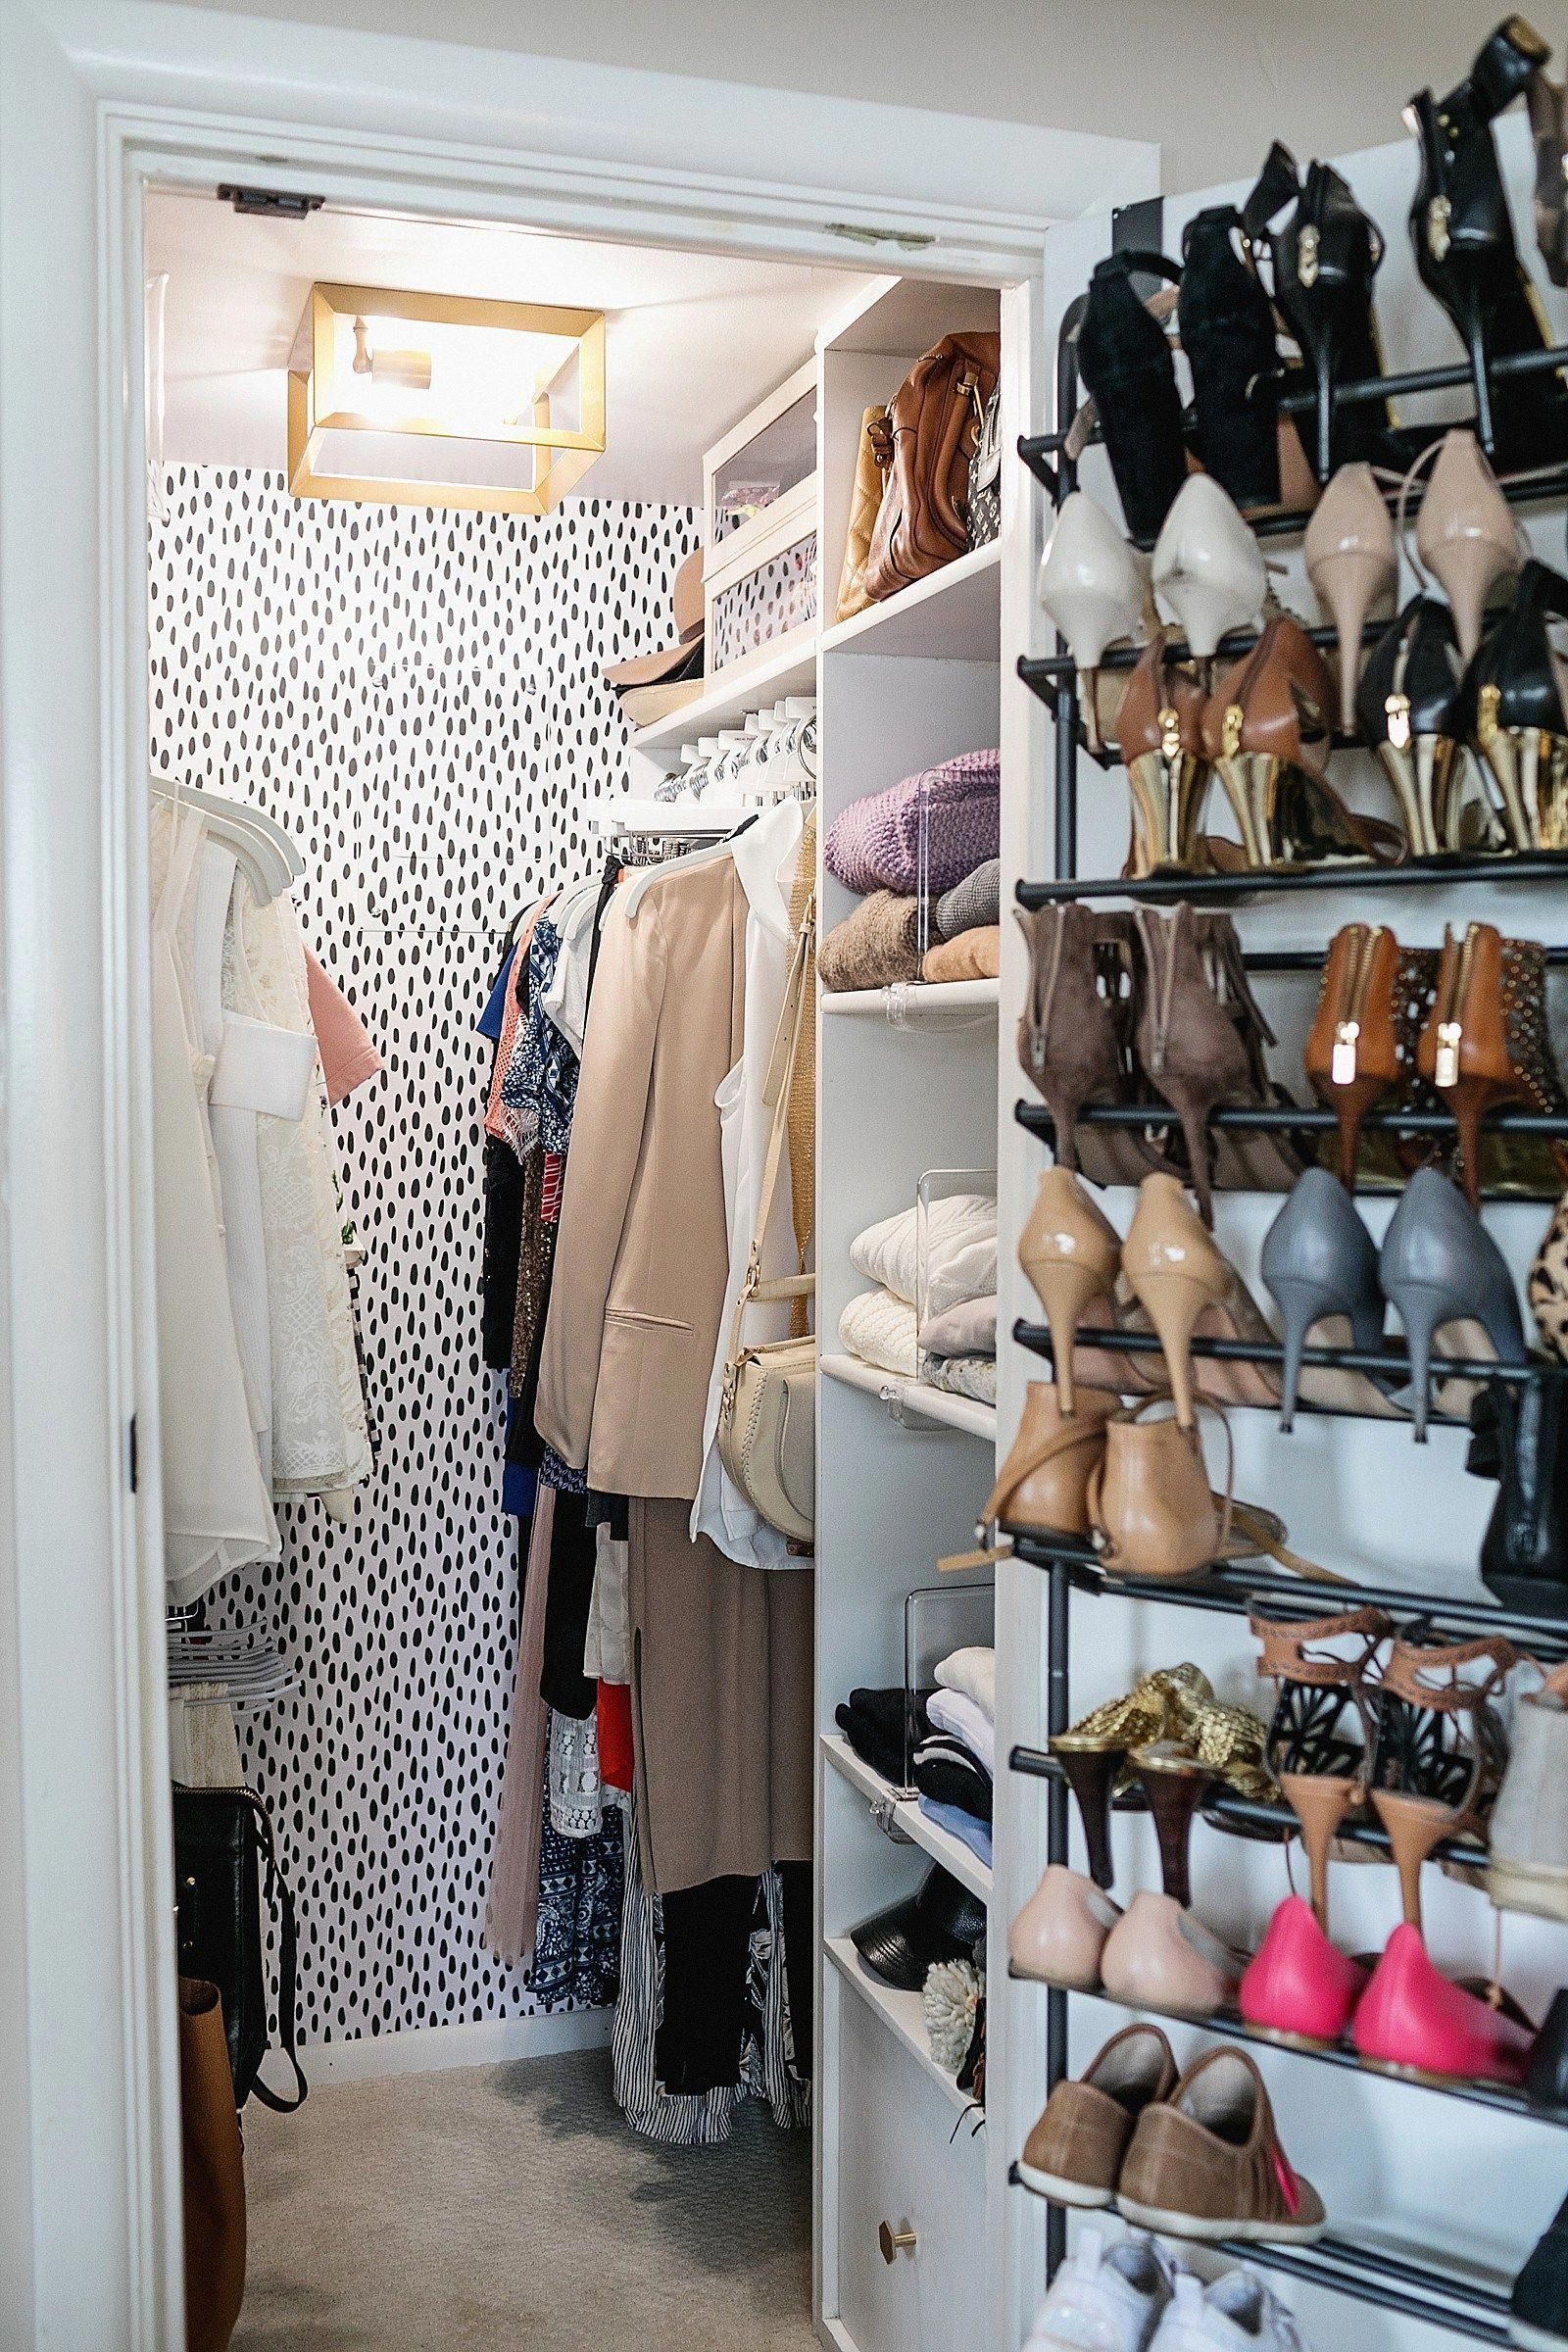 Closet makeover organization tips for an efficient tiny